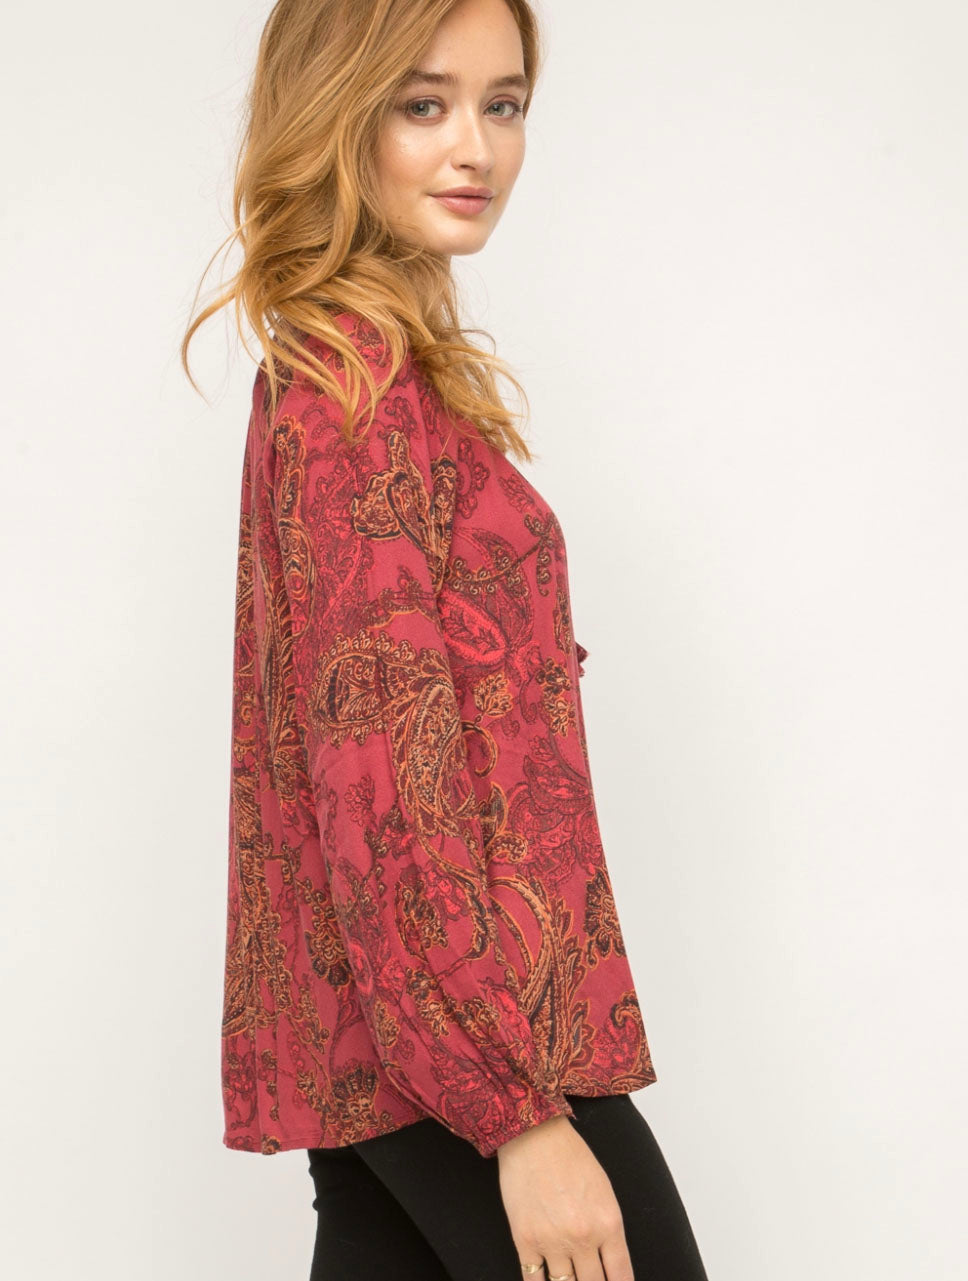 Mystree Smocked Peasant Top in Burgundy